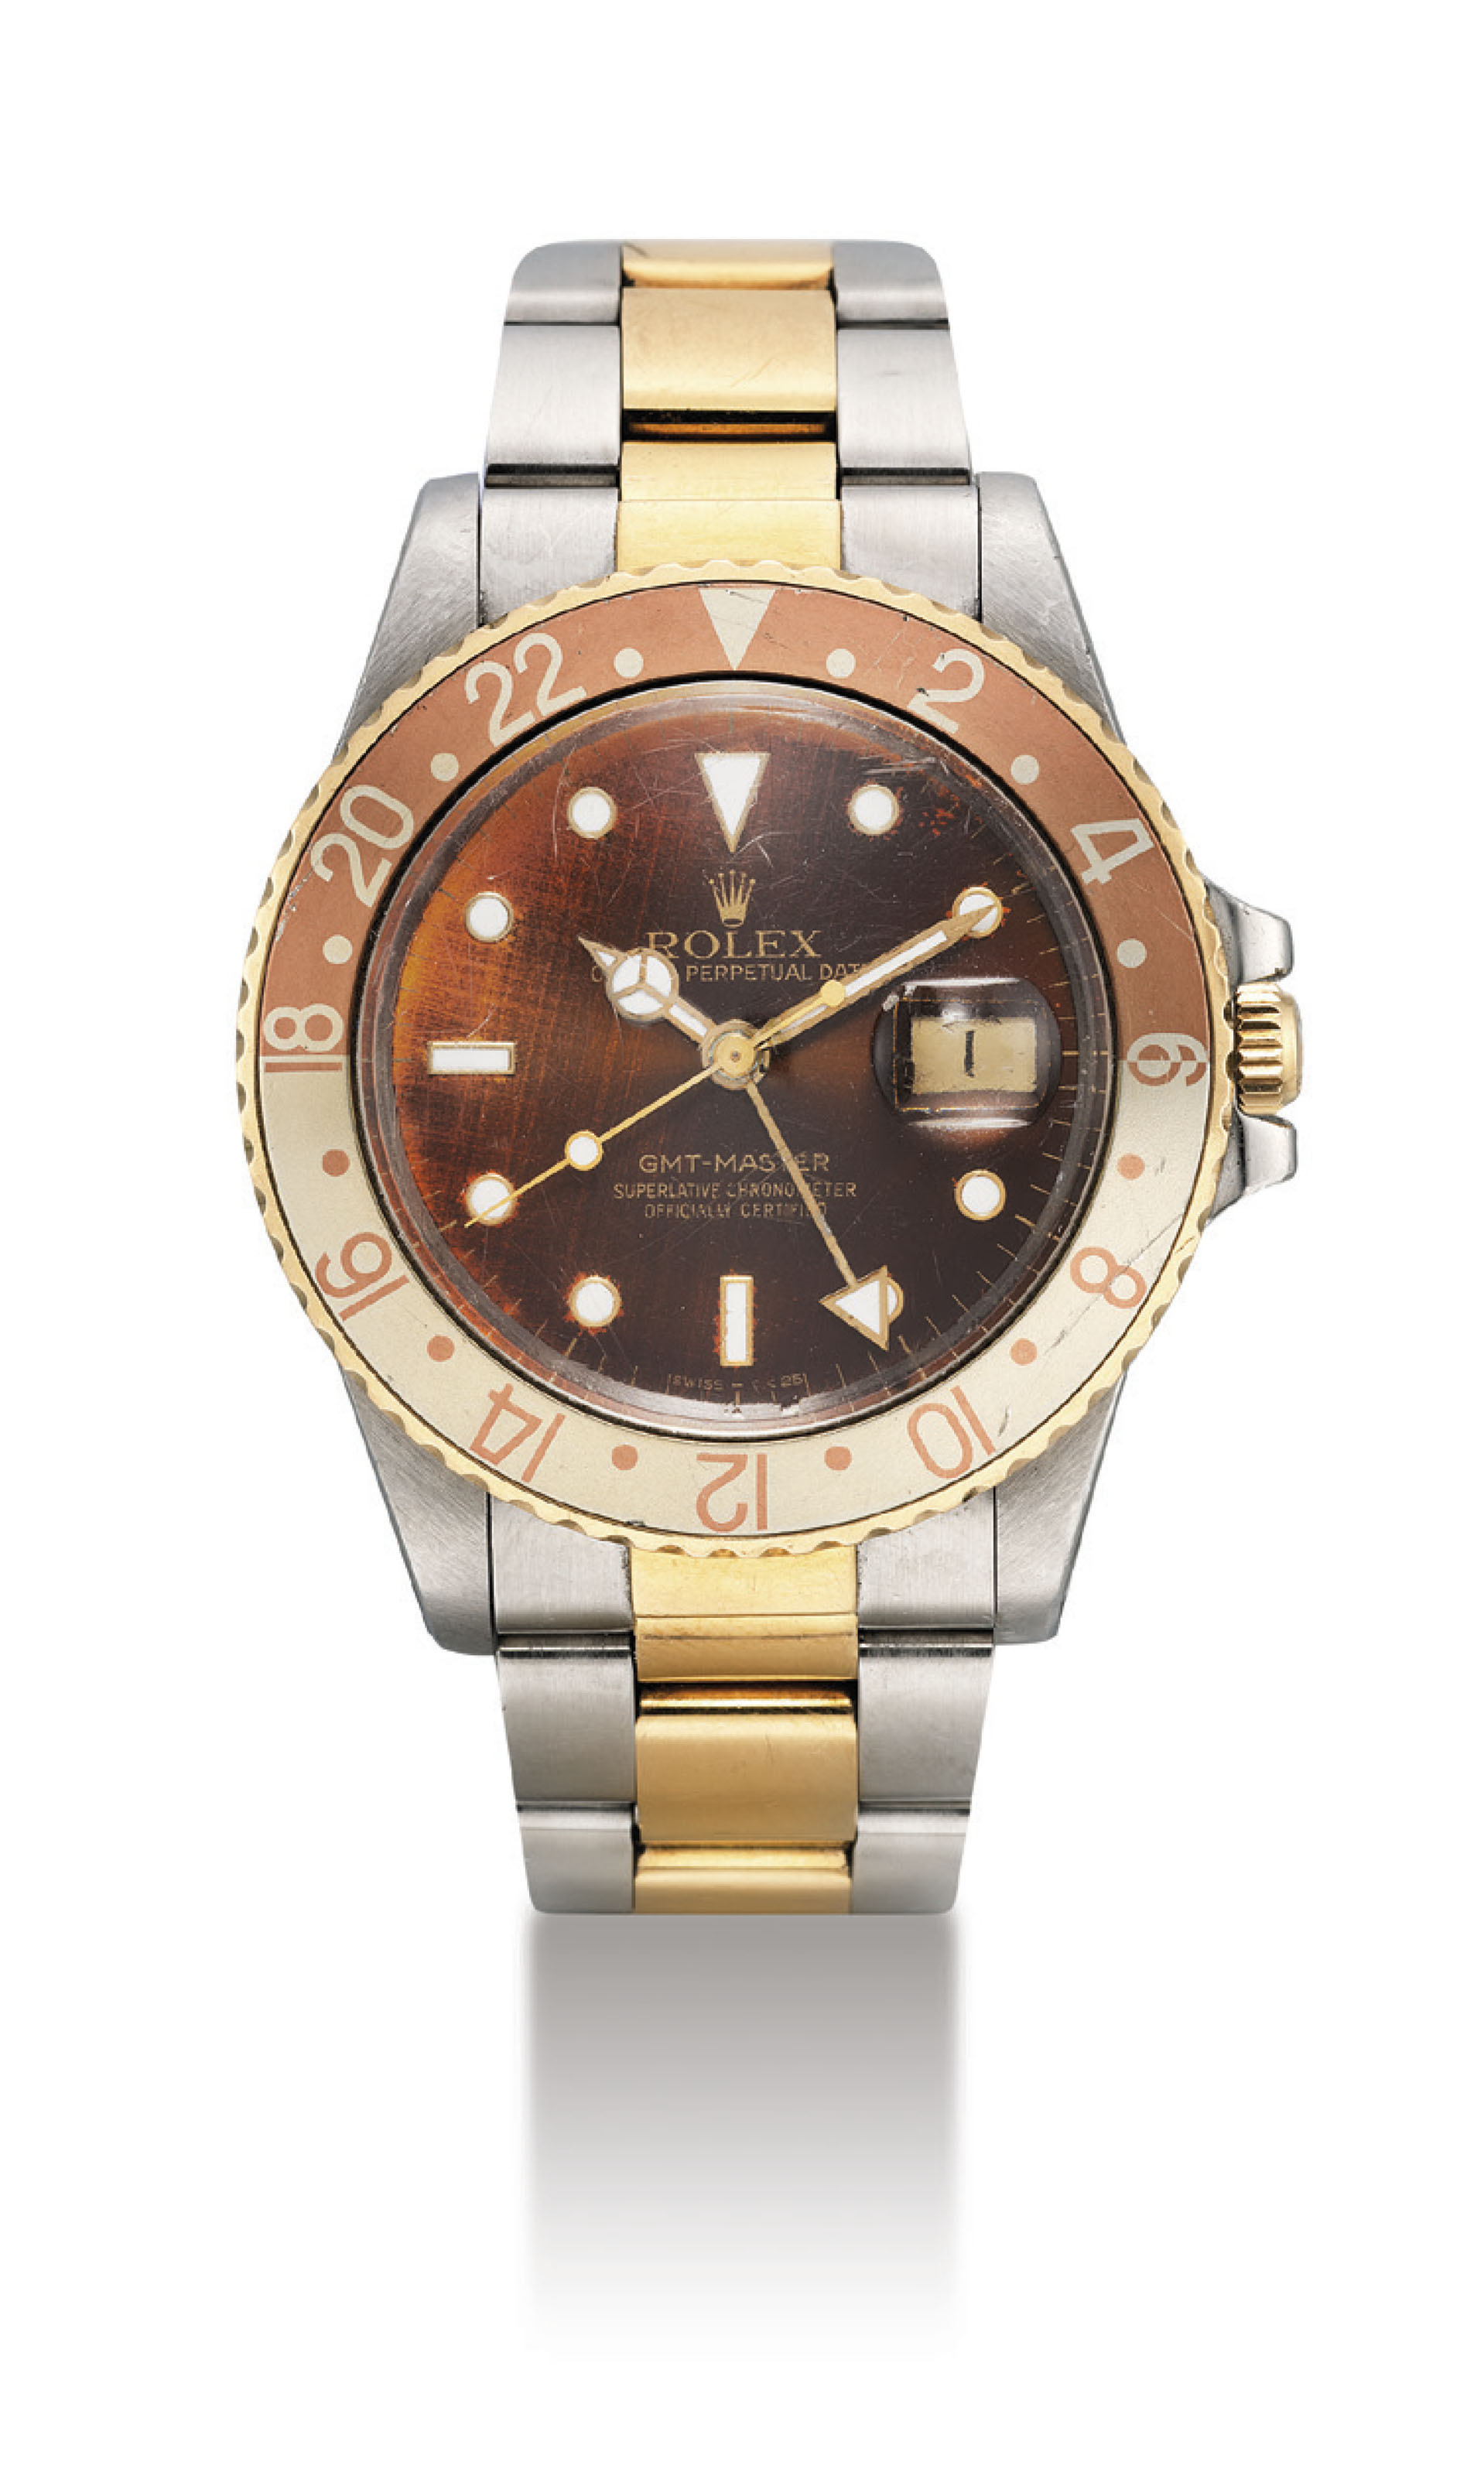 ROLEX. A STAINLESS STEEL AND 1